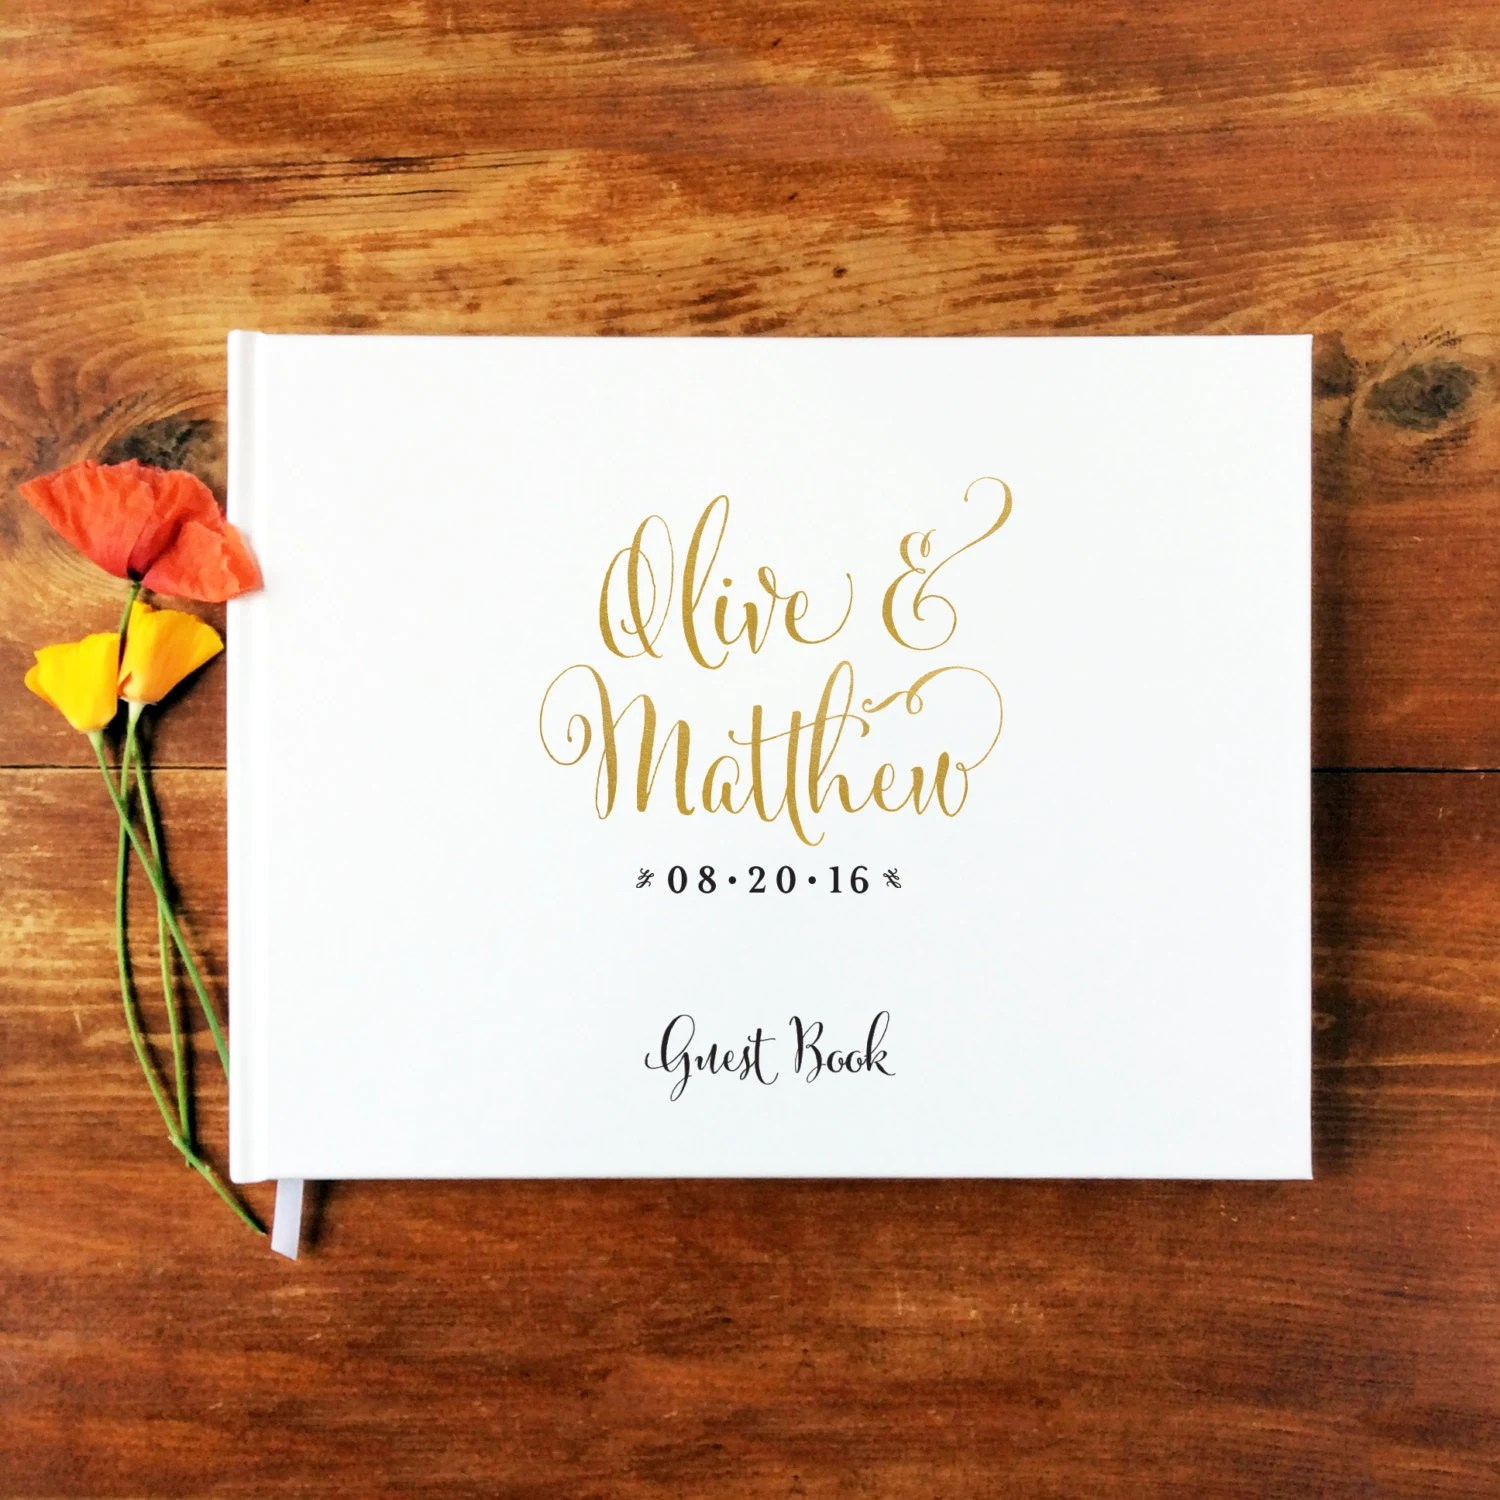 calligraphy wedding books Wedding Guest Book Landscape 1 Hardcover Wedding Guestbook Custom Guest Book Personalized Guest Book Gold Calligraphy